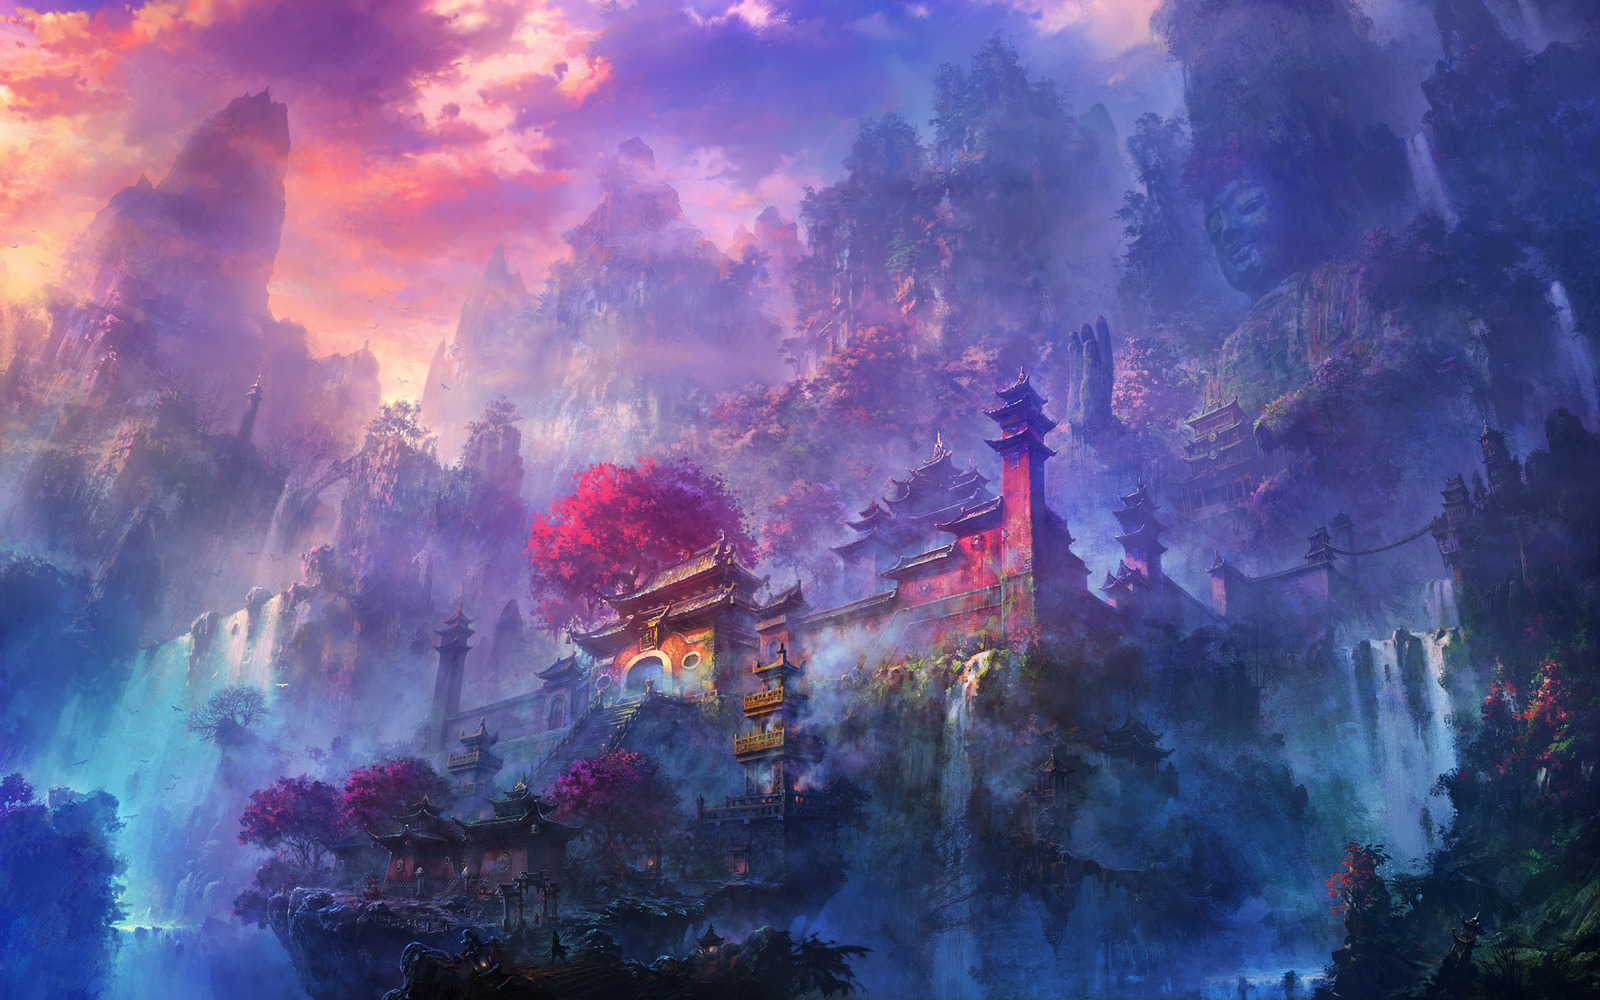 Visit the fascinating fantasy worlds of li shuxing a - Fantasy scenery wallpaper ...